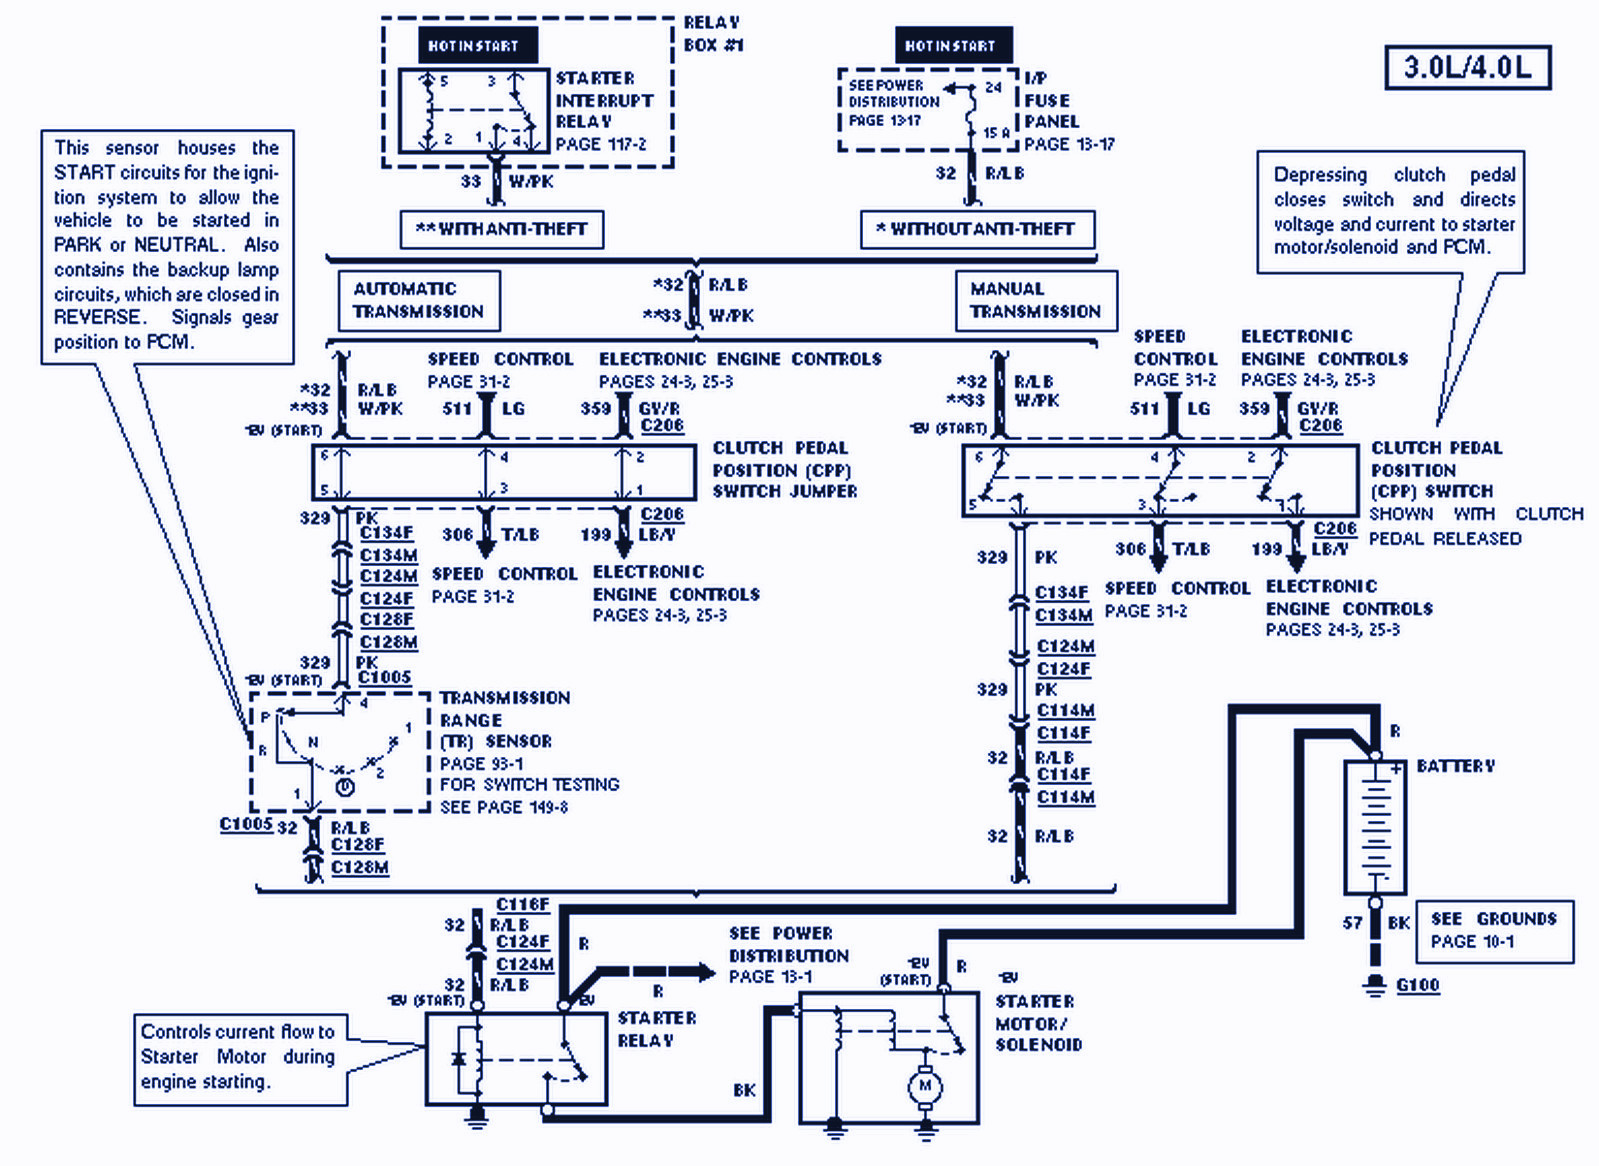 ford ranger starter wiring diagram wiring library ford starter relay wiring diagram 1995 ranger wiring diagram wiring diagram schemes ford ranger gas tank removal 1995 ford ranger wiring